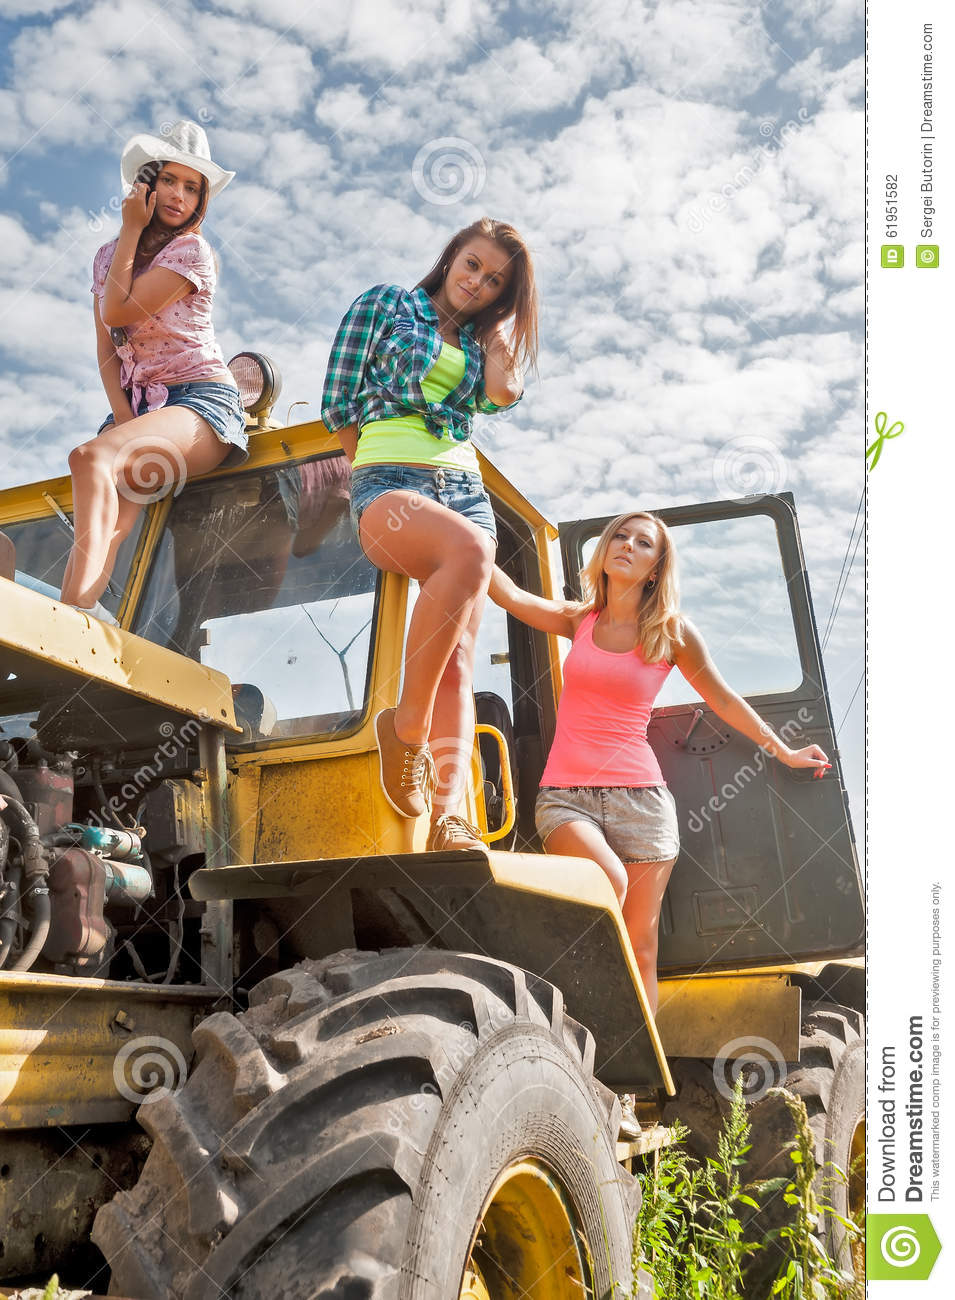 Something Big tractors and naked girls sorry